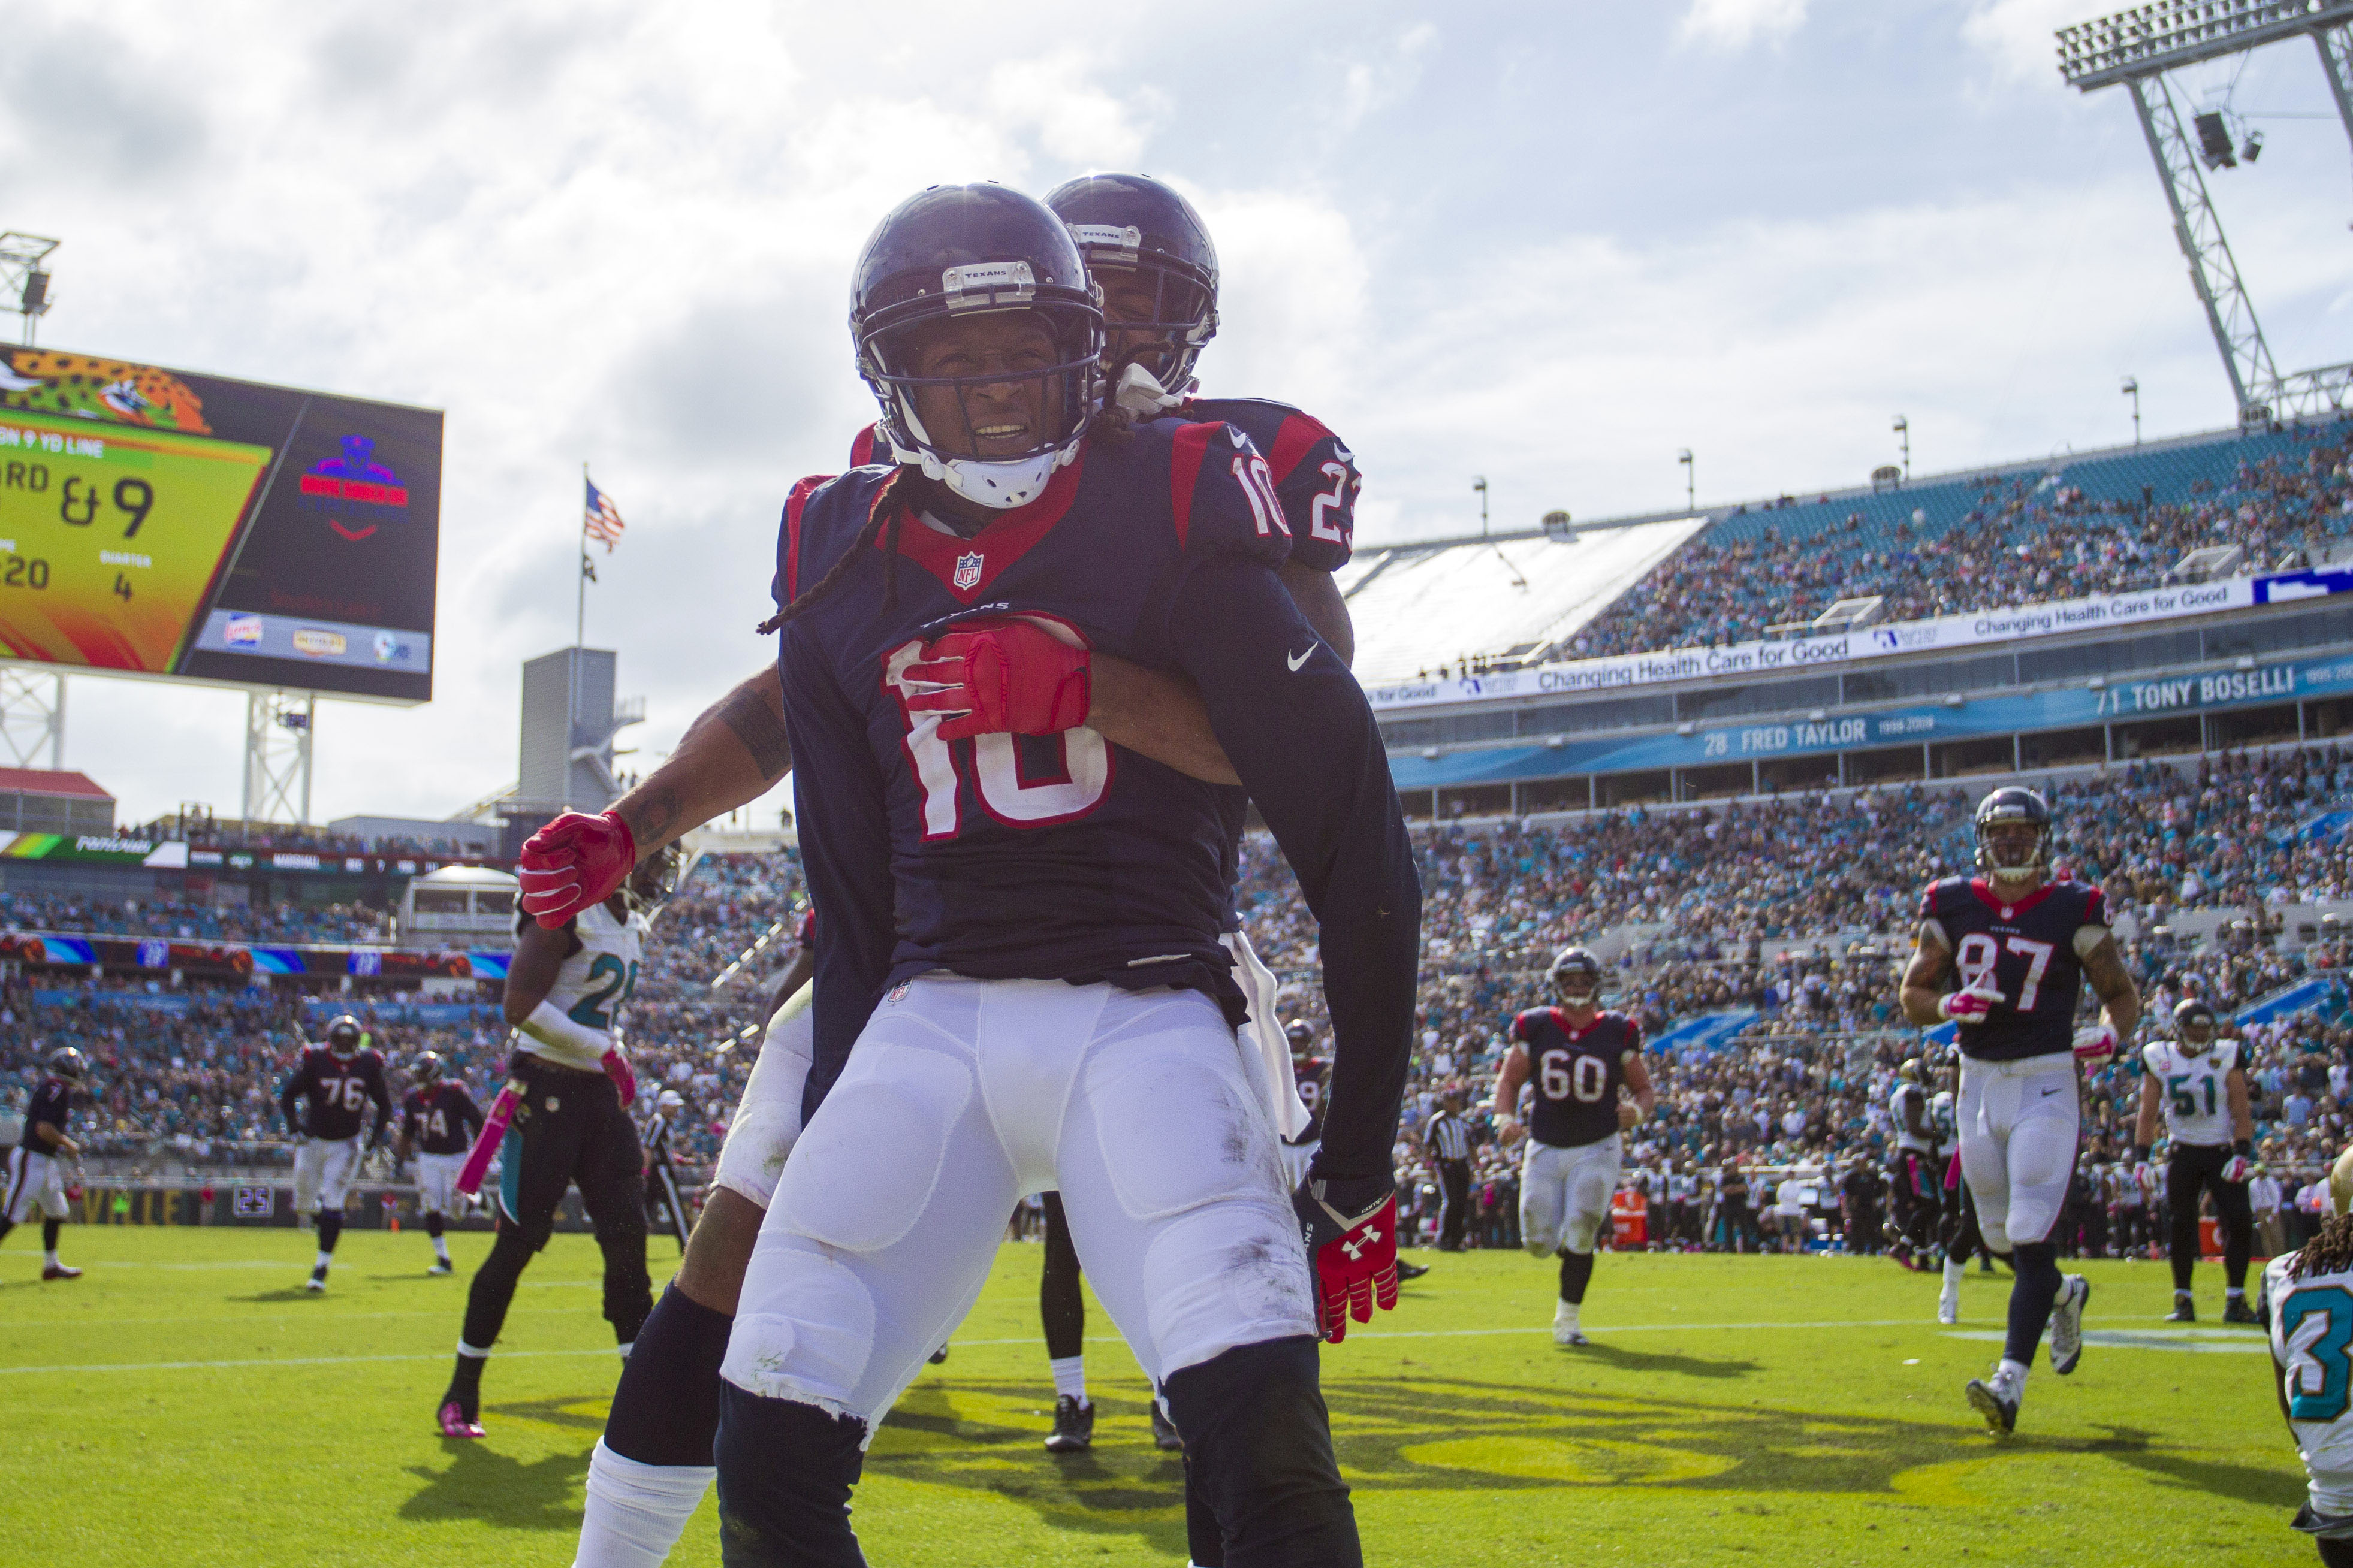 DeAndre Hopkins is so good, he has time to spoon while catching touchdowns.